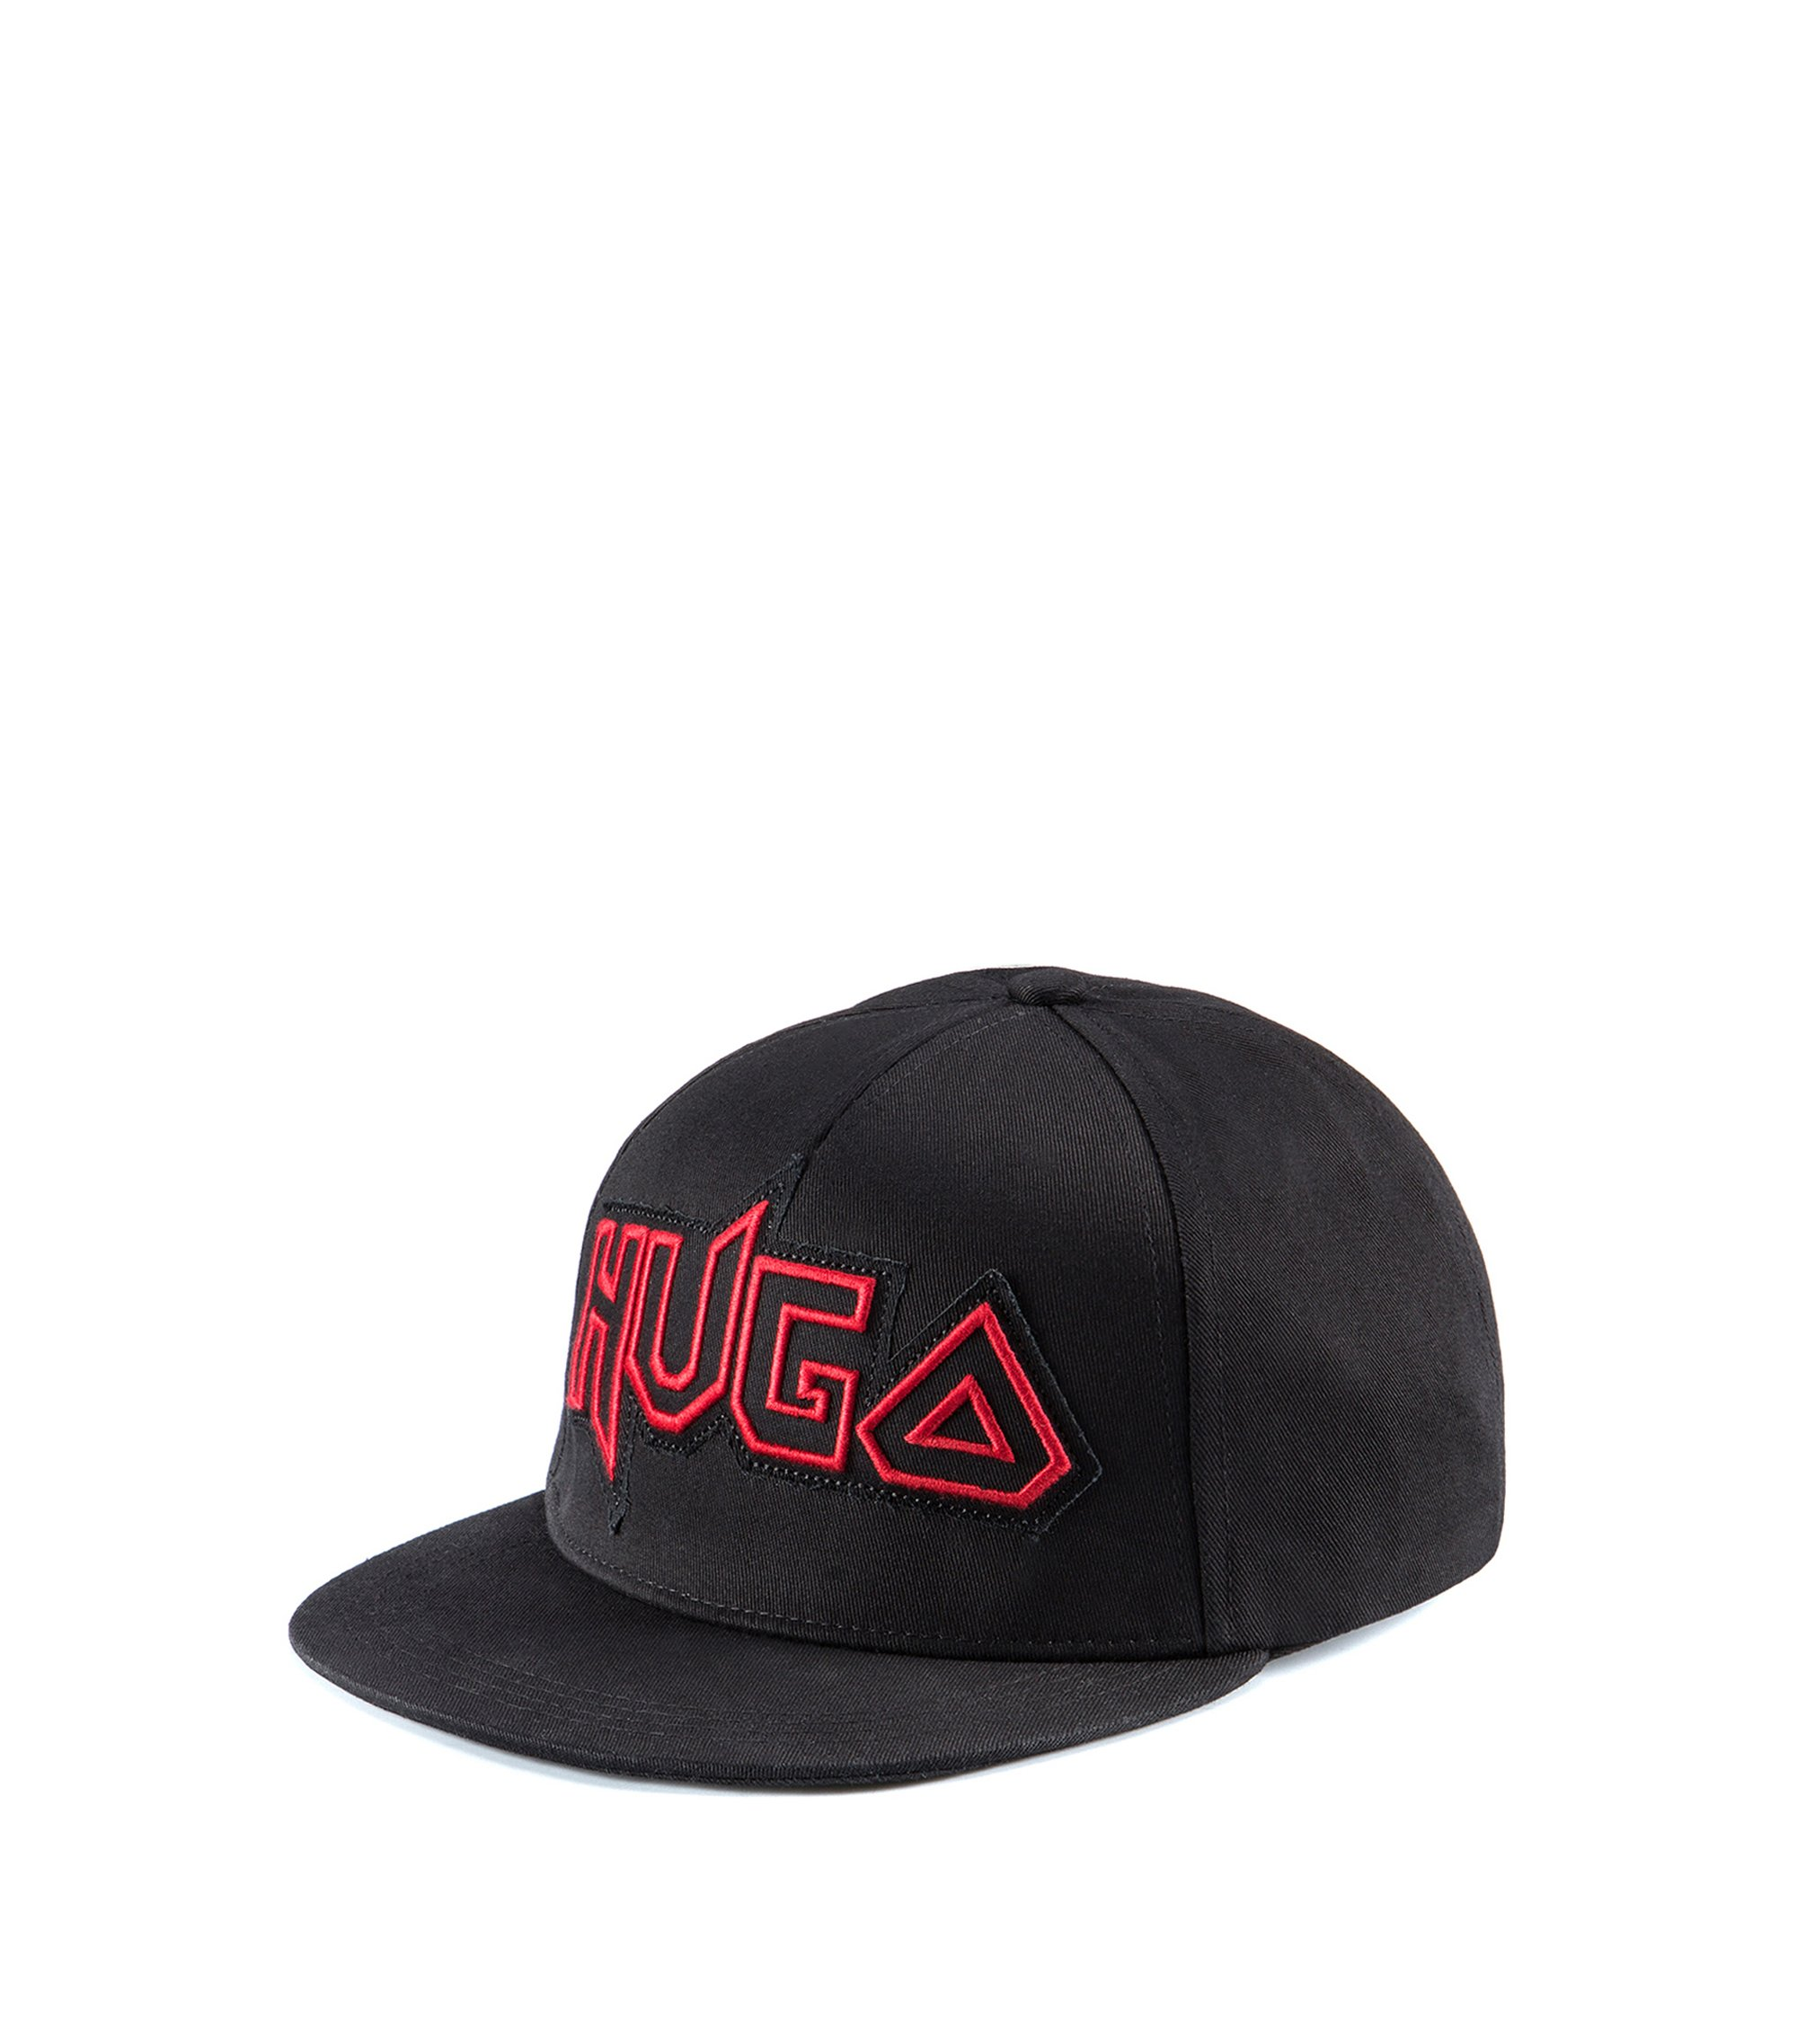 Edgy logo baseball cap in cotton gabardine, Black